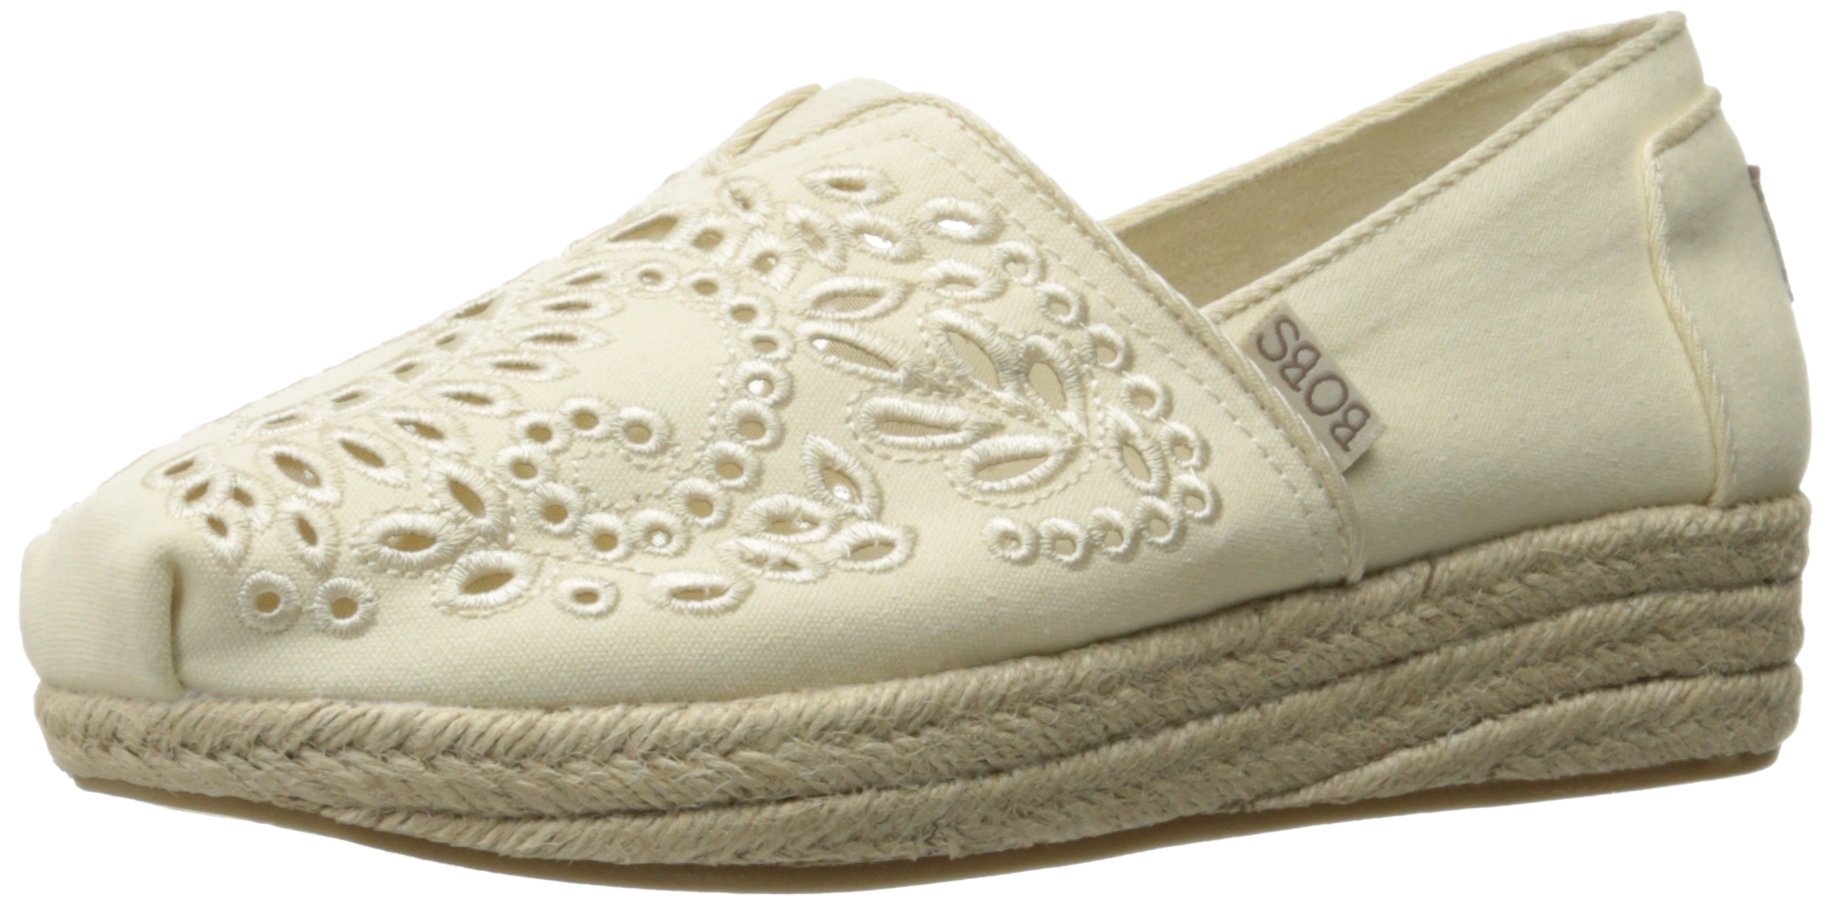 Skechers BOBS from Women's Highlights-Sun Flower Flat, Natural Sunflower, 9 M US